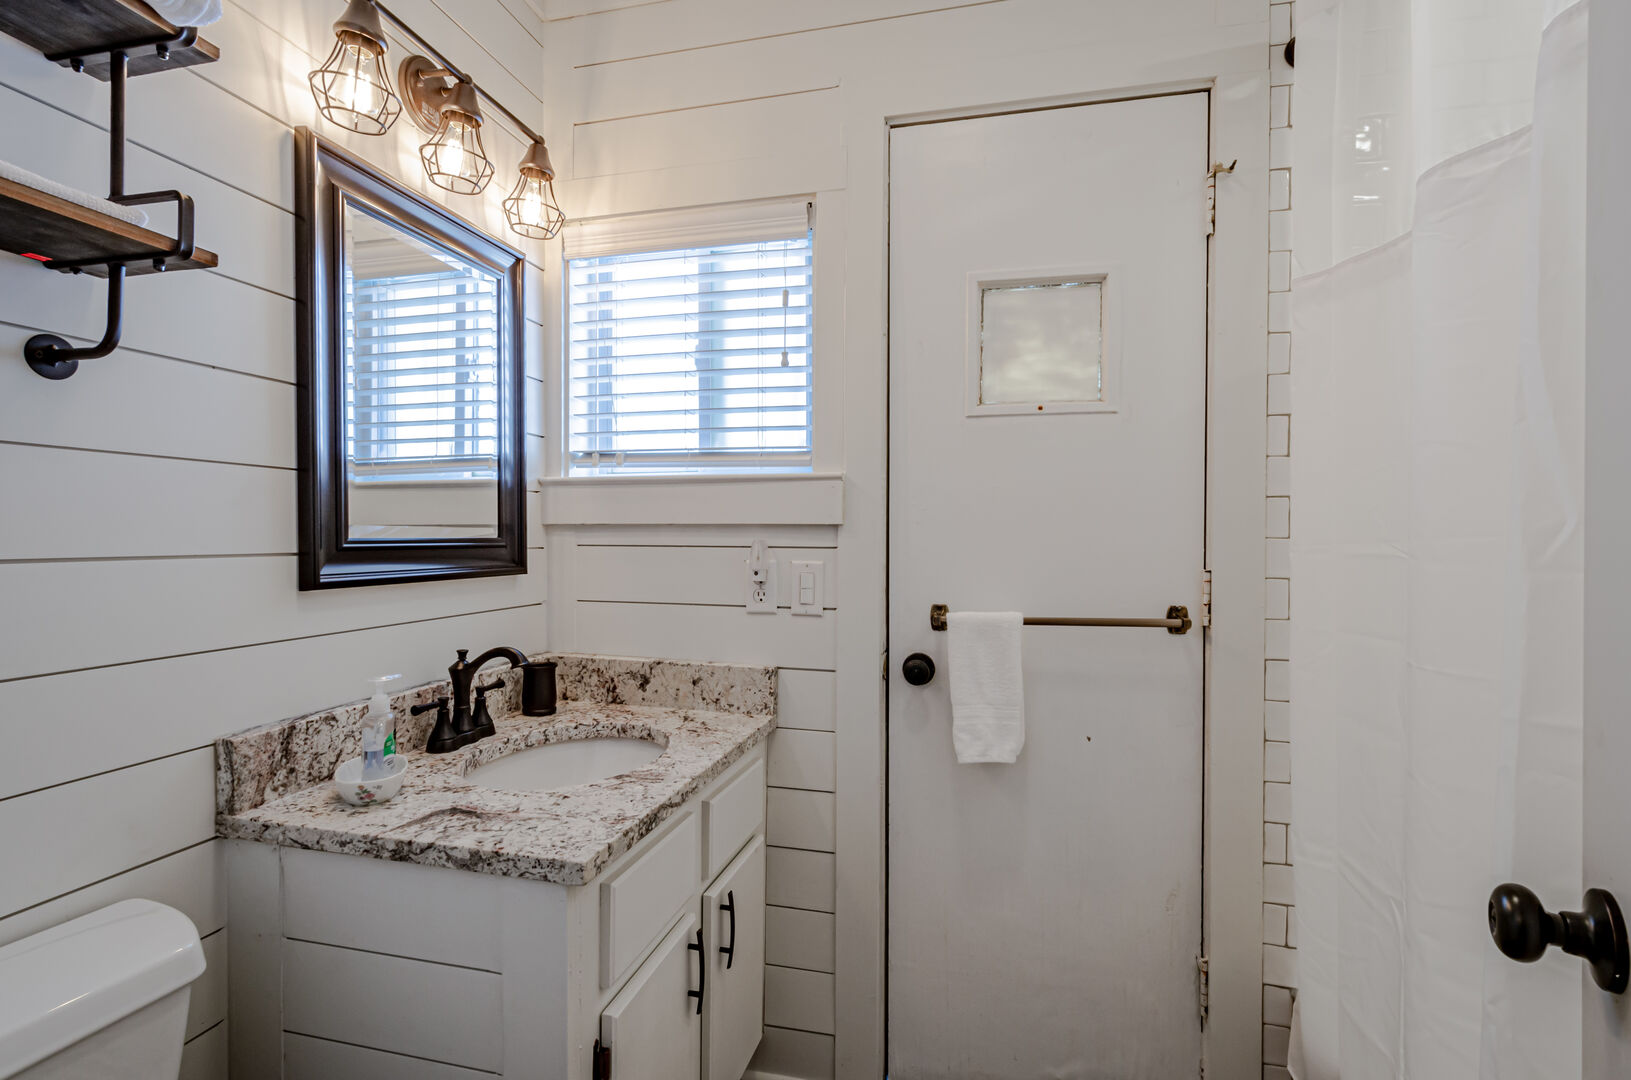 Shared hall bathroom with sink and toilet.